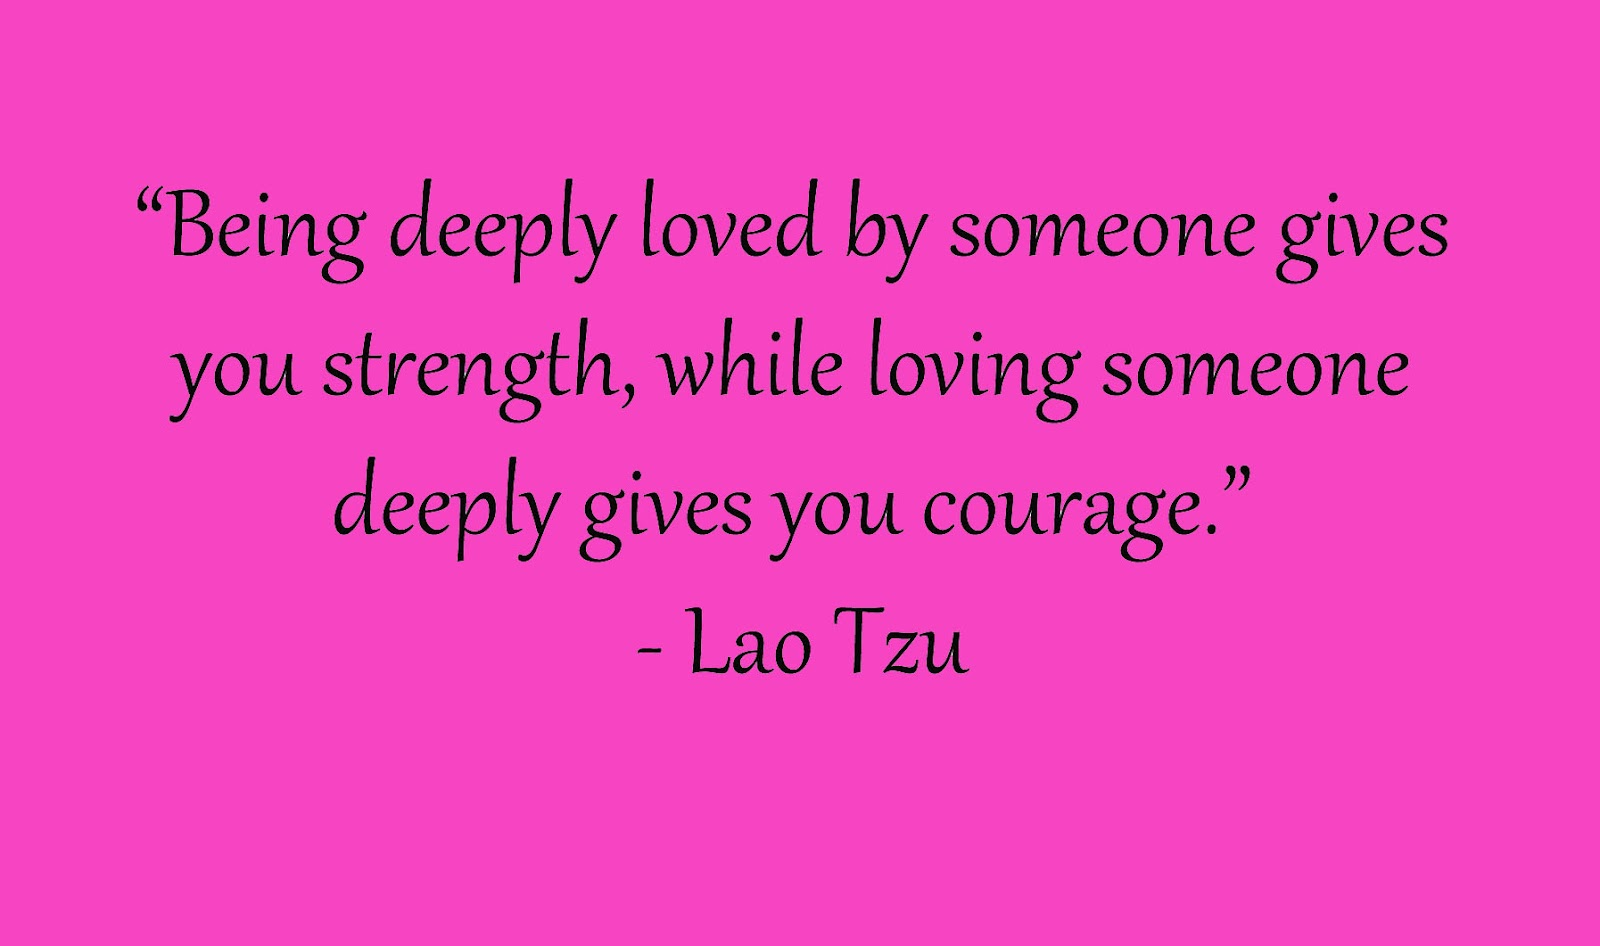 Quotes About Love And Sailing Quotesgram: Lao Tzu Quotes About Love. QuotesGram